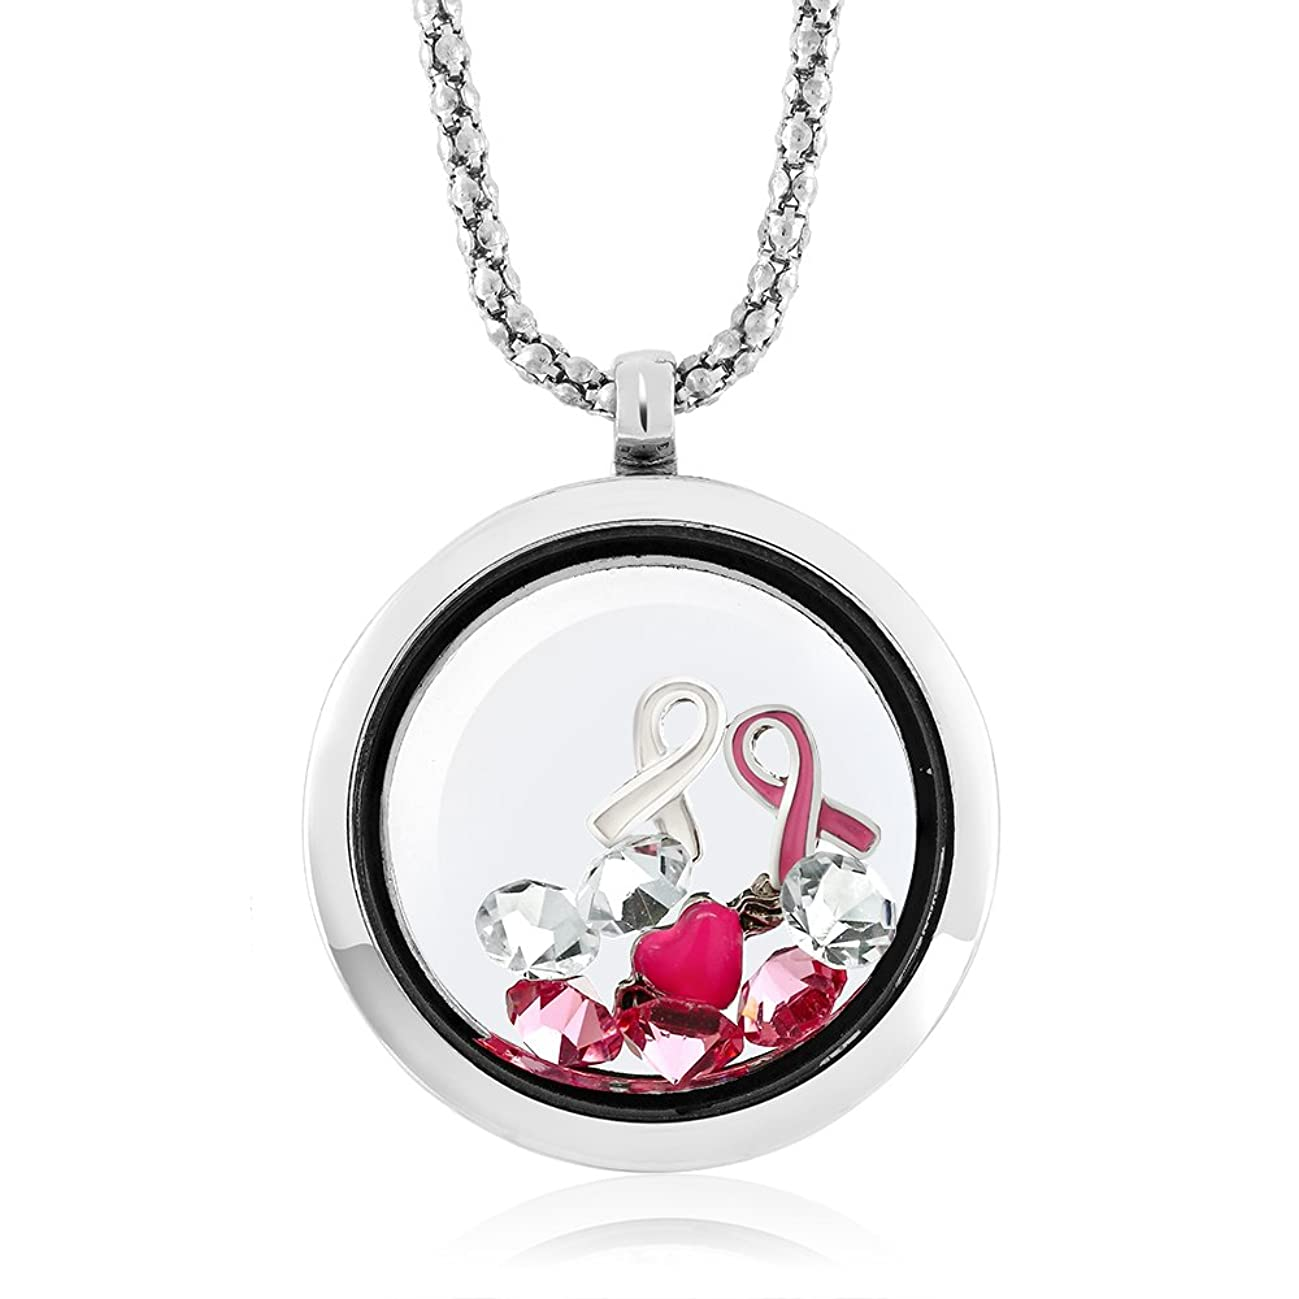 Gem Stone King Breast Cancer Awareness Floating Ribbon Multi-Colored Crystals Locket Pendant Necklace with 24 Inch Chain